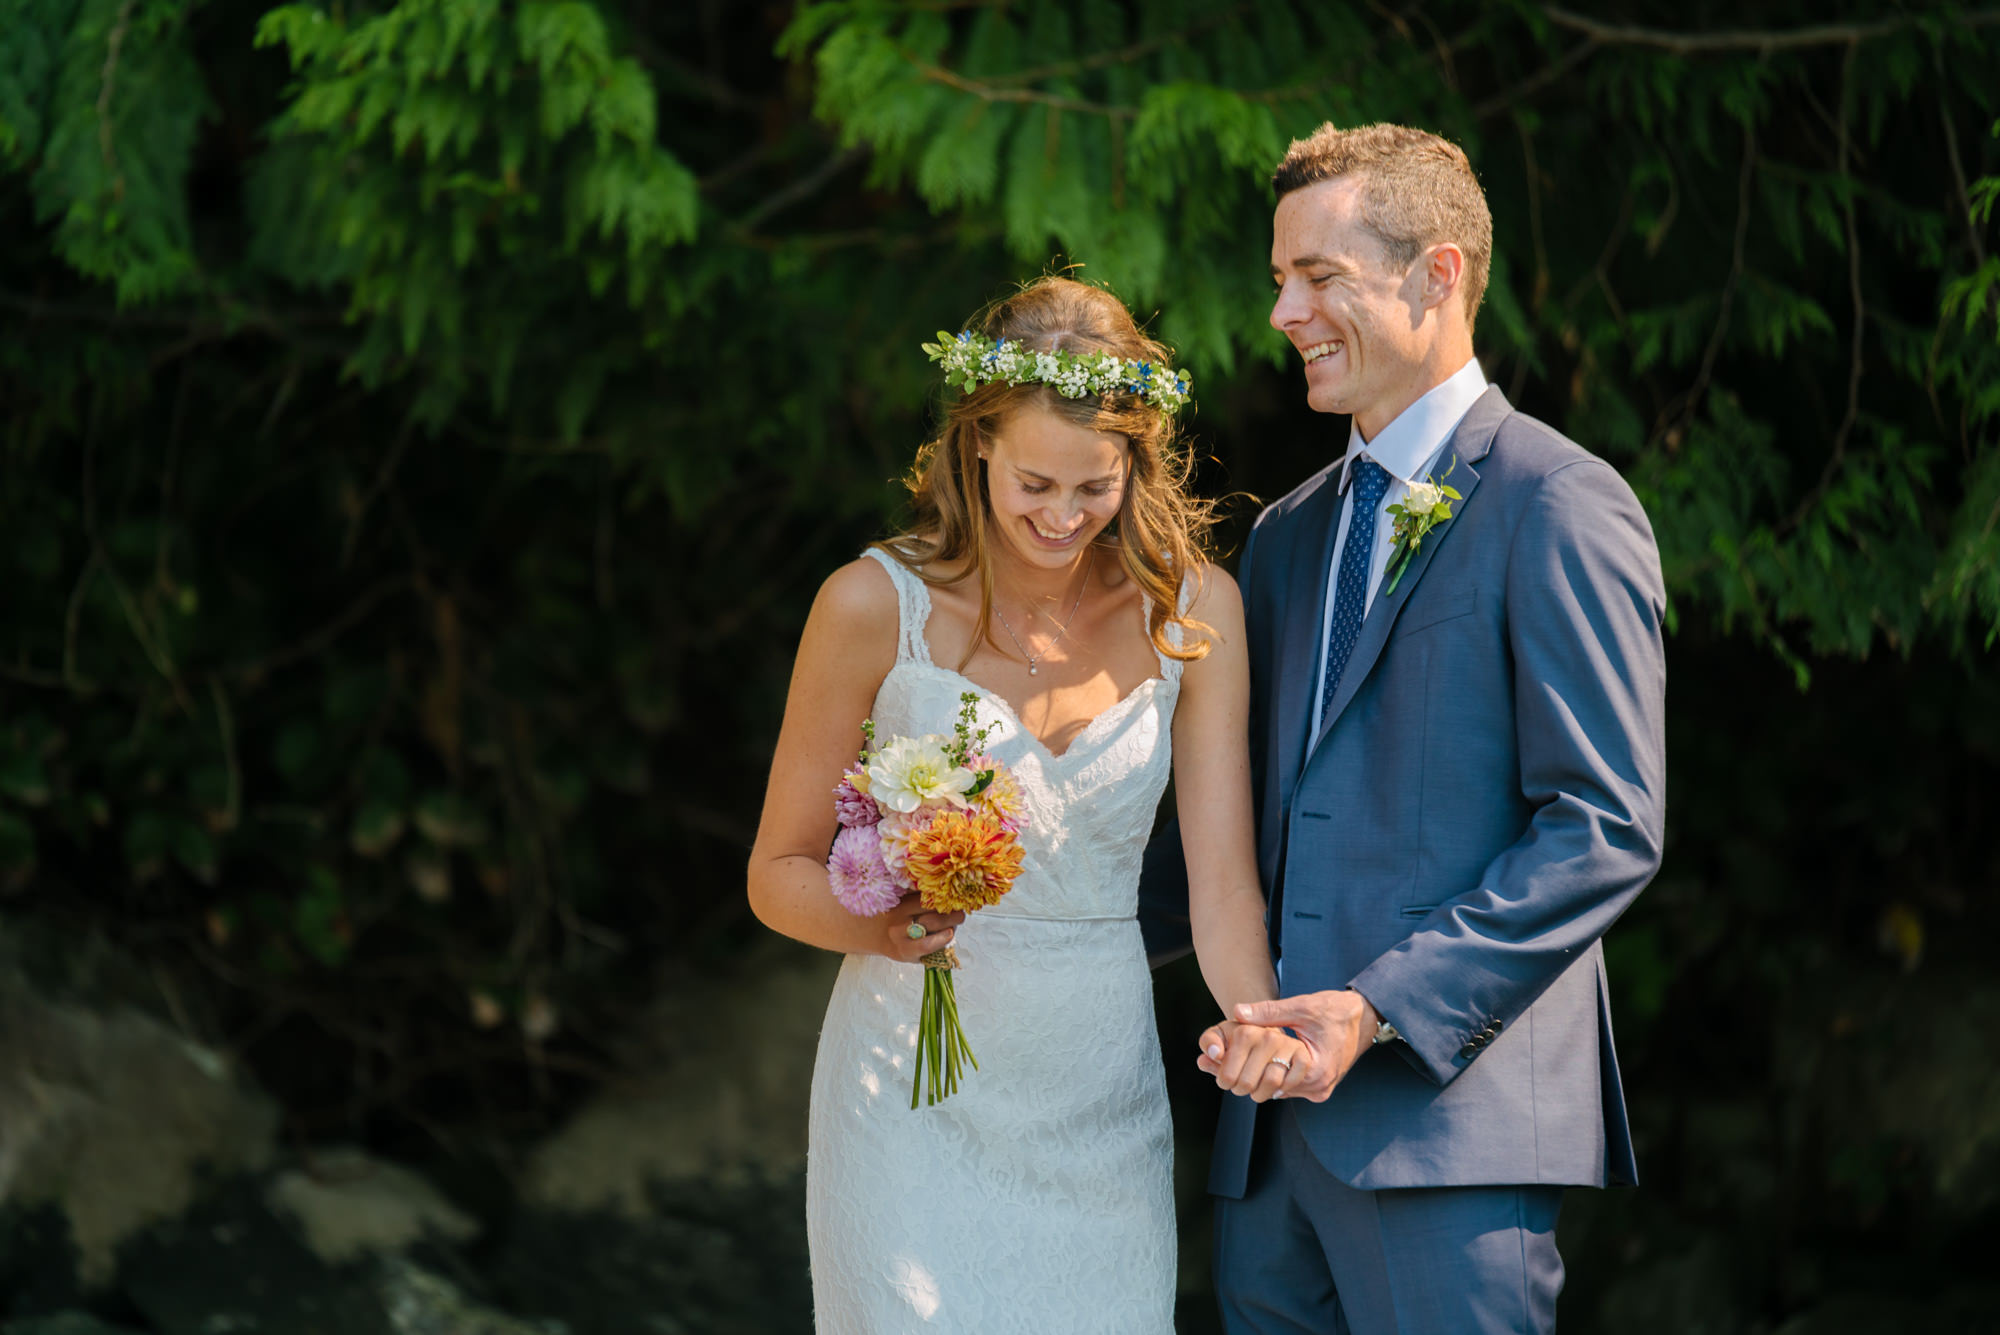 bowen_island_wedding_photographer_vancouver151857_9_kahophotography_weddingphotographer.jpg